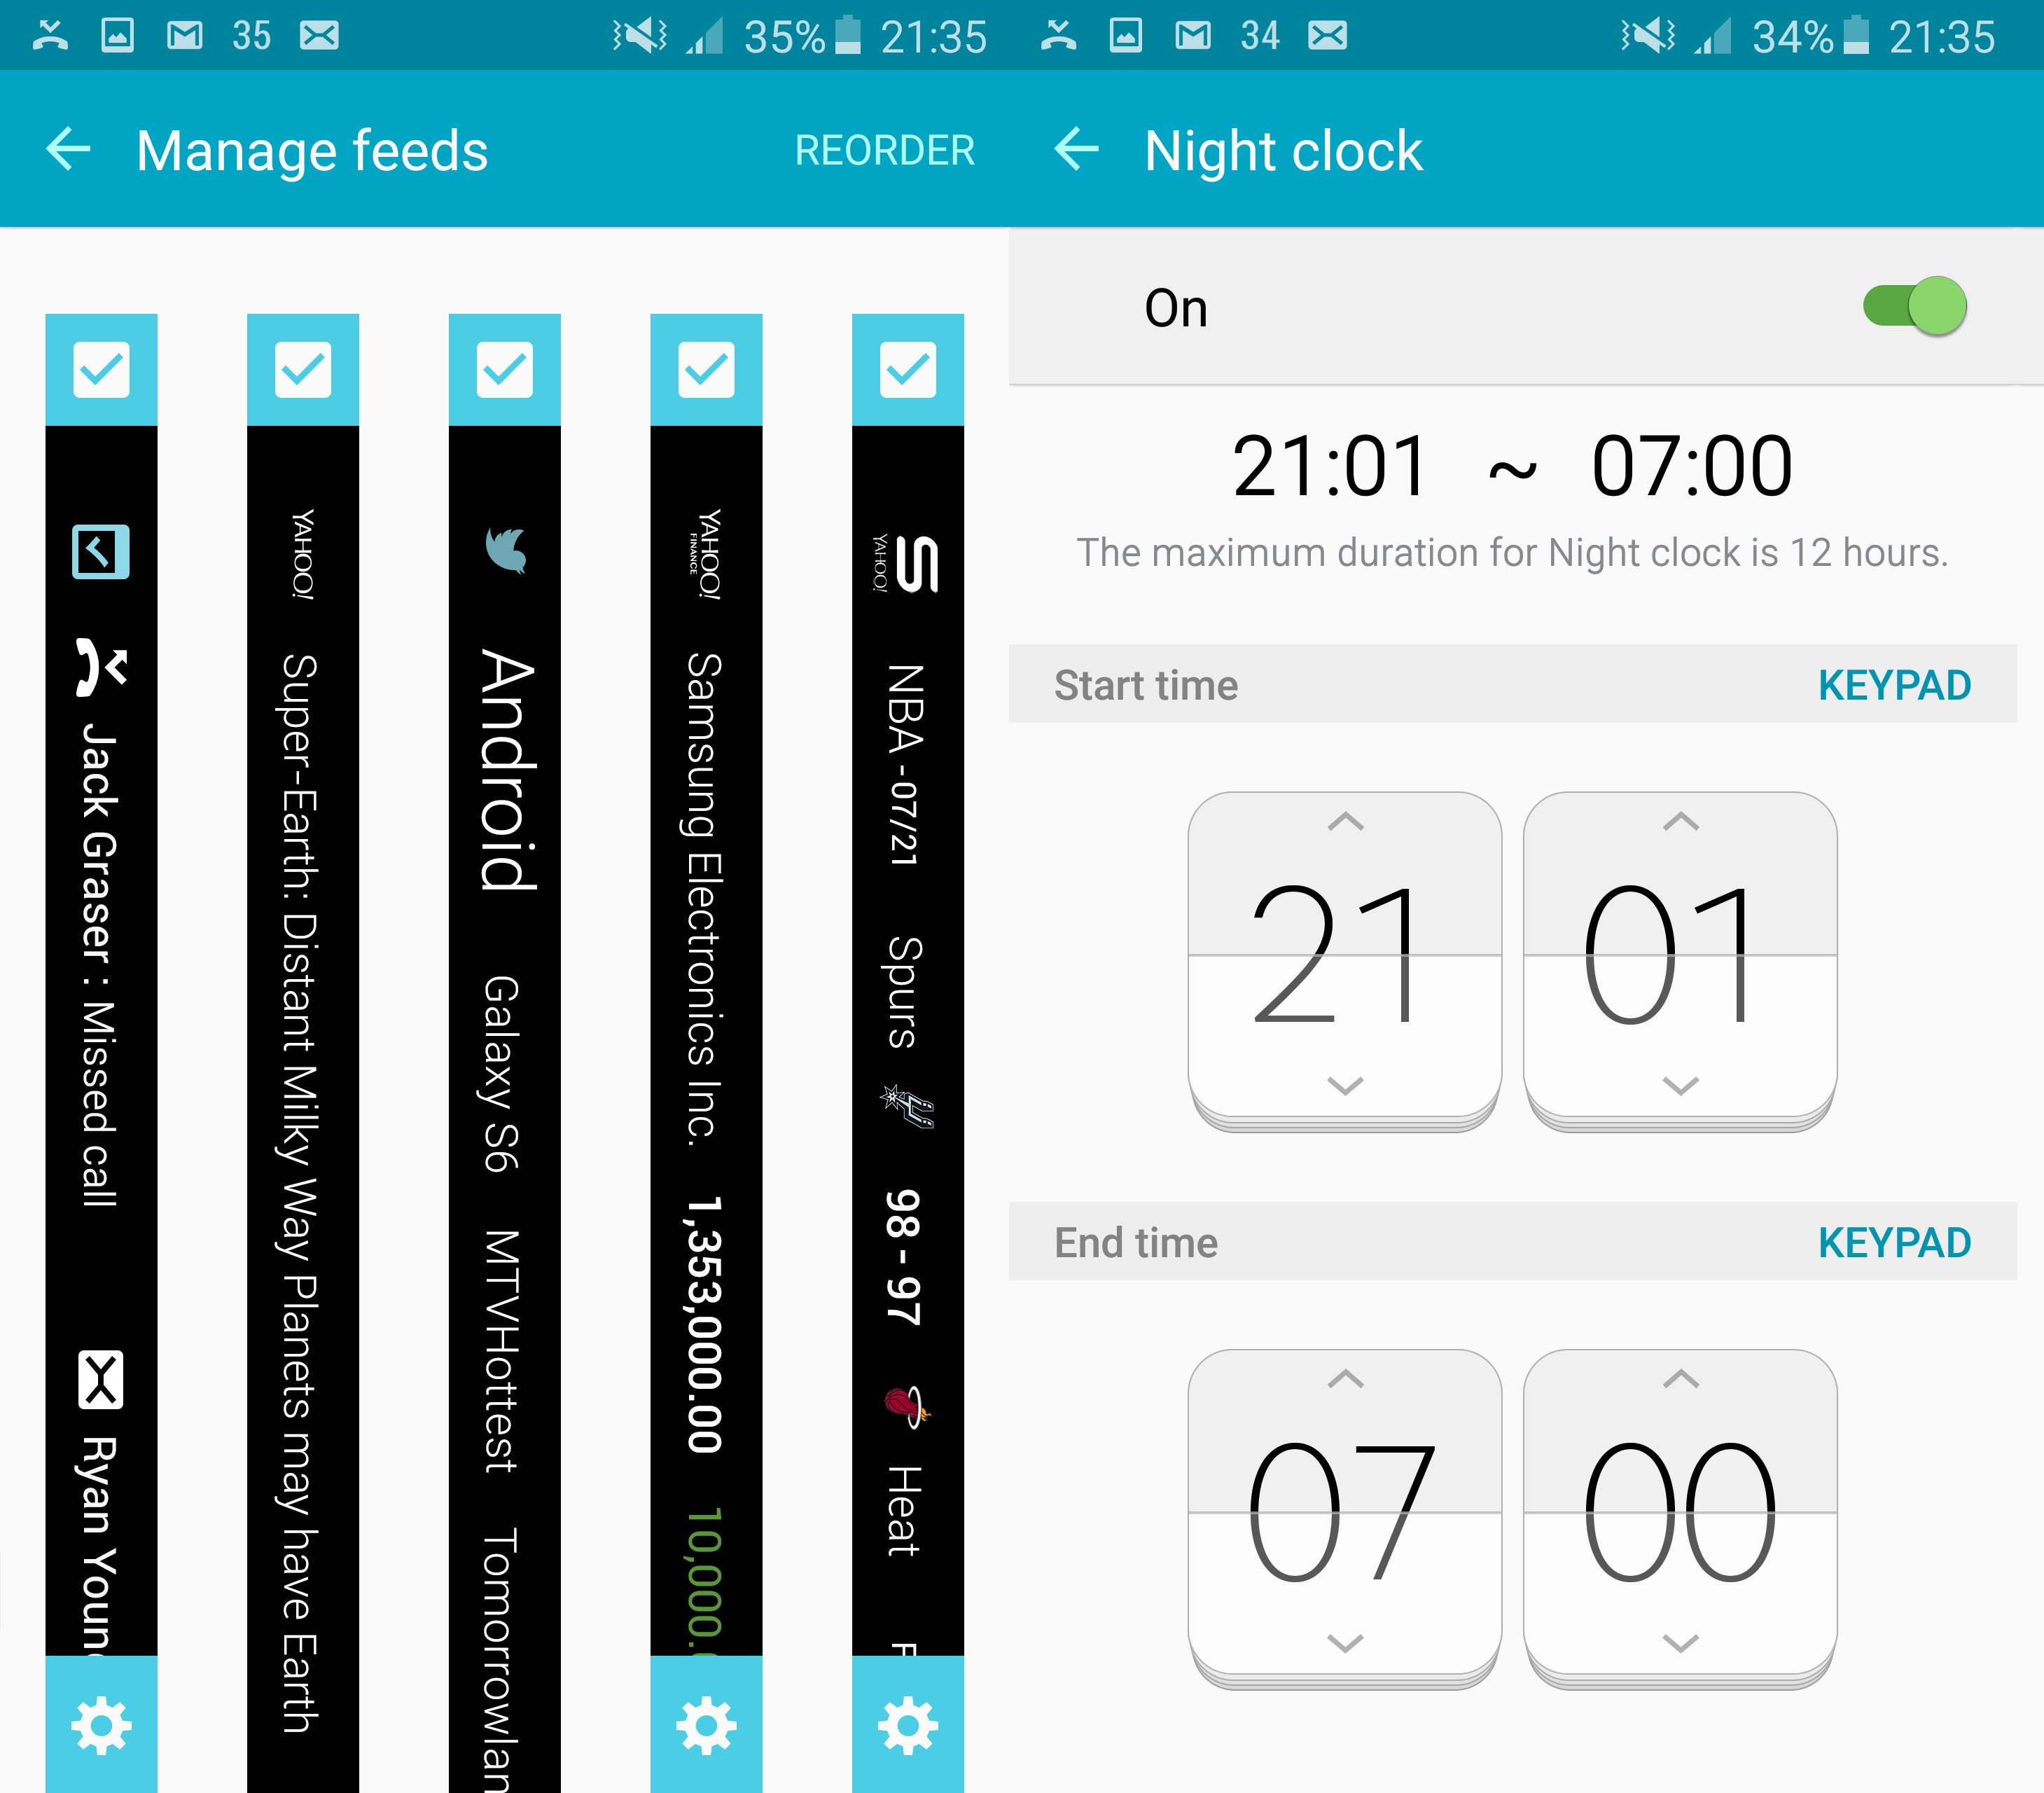 Samsung Galaxy S6 Edge Display Settings Night Clock Screen